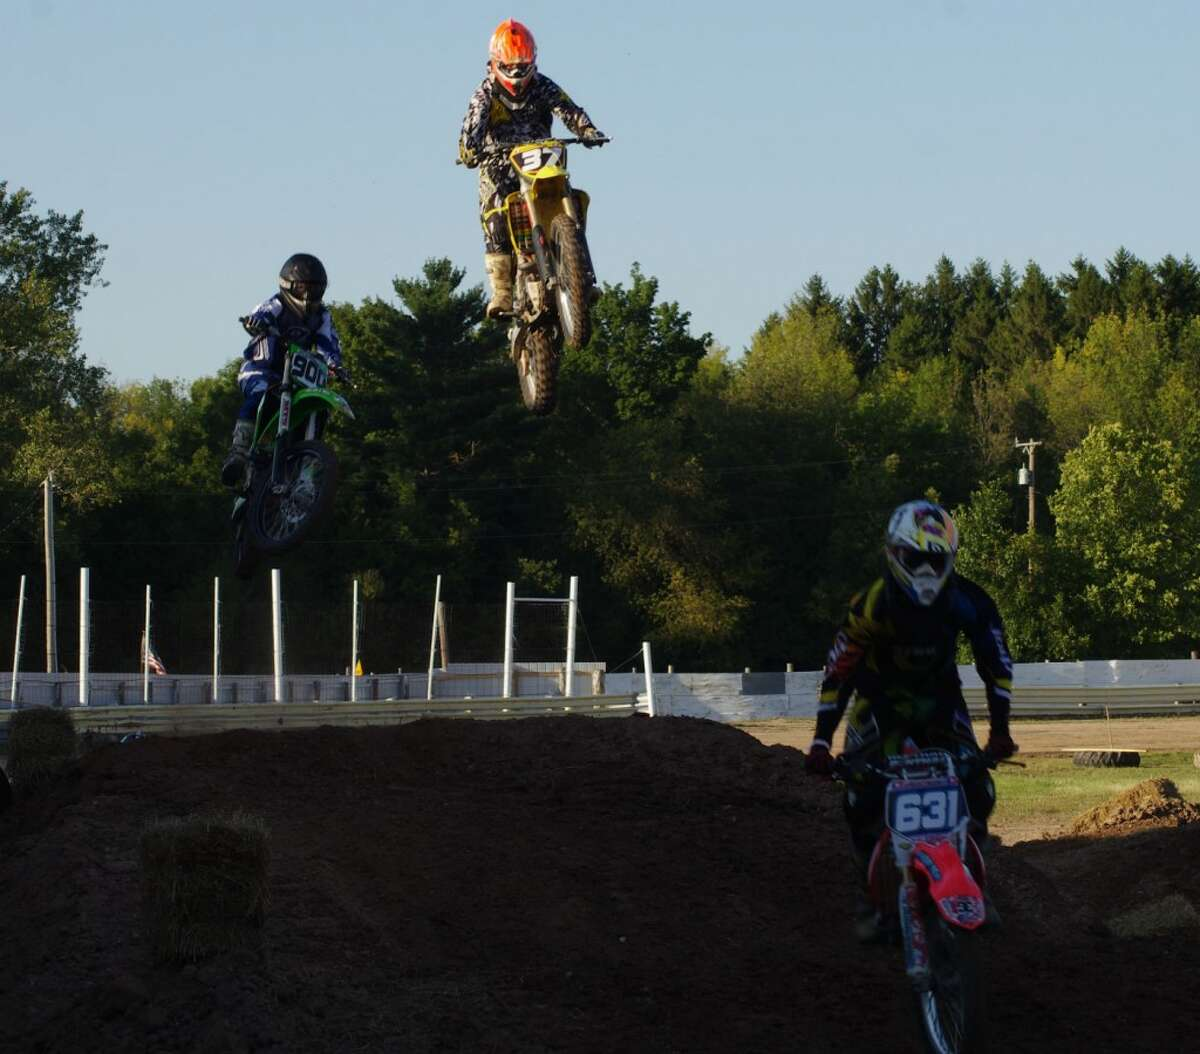 Tuesday evening's grandstand entertainment at the Manistee County Fair was motocross racing. (Dave Yarnell/News Advocate)